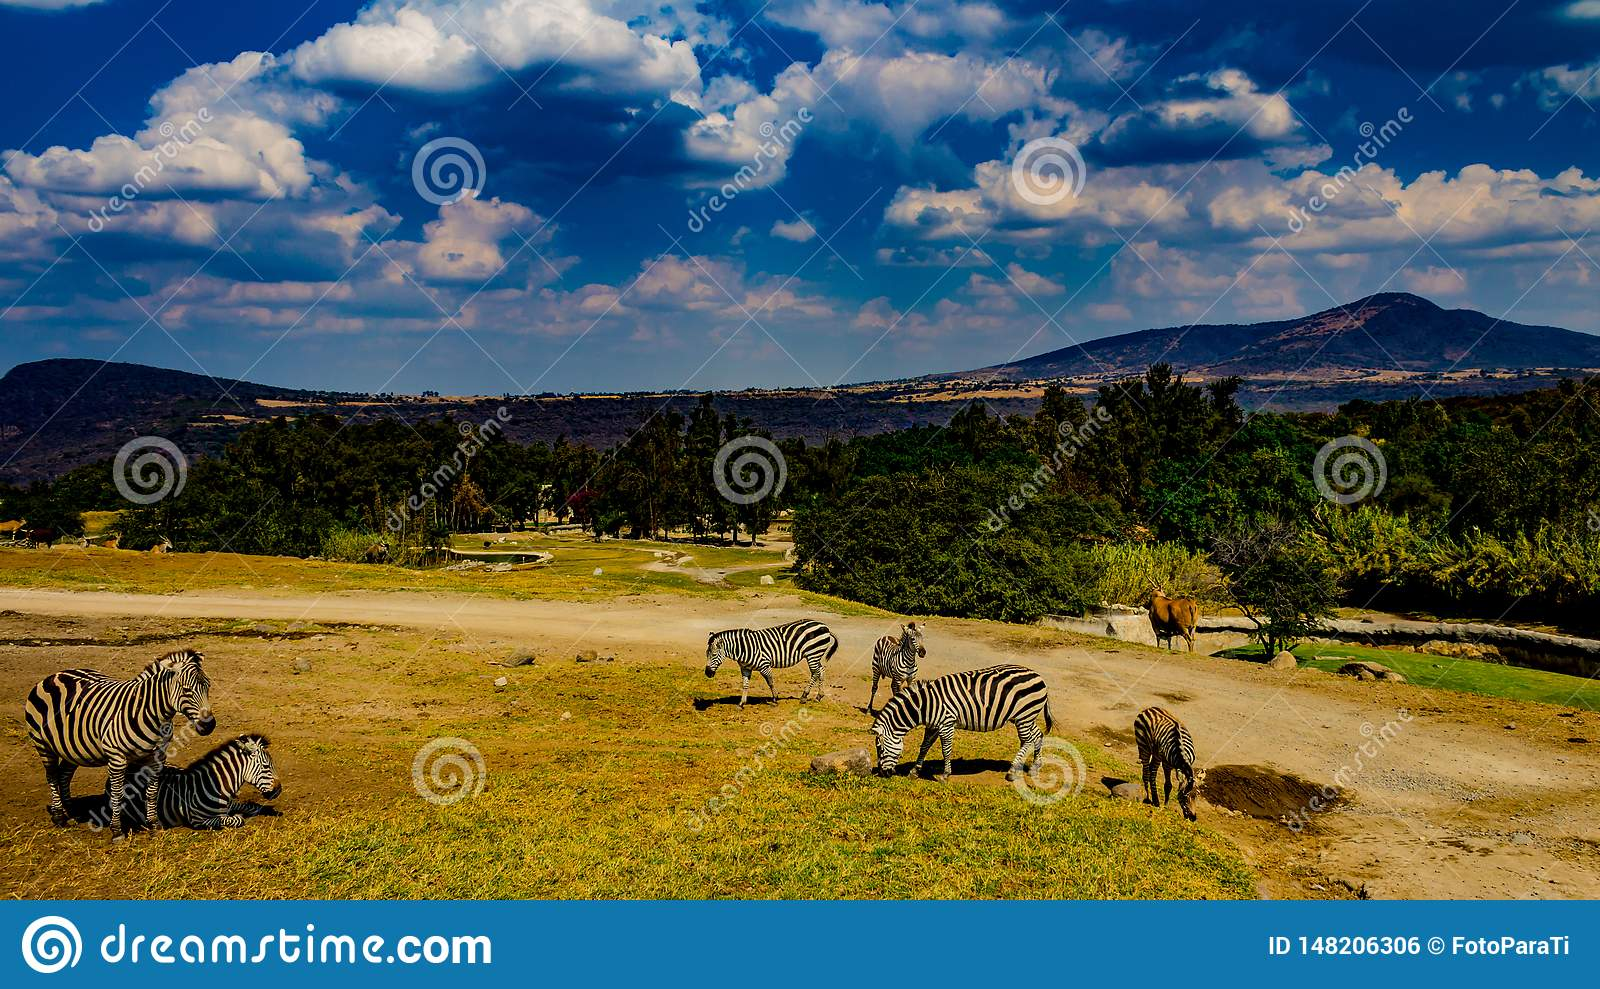 Zebras in a nature reserve with trees, grass and green vegetation